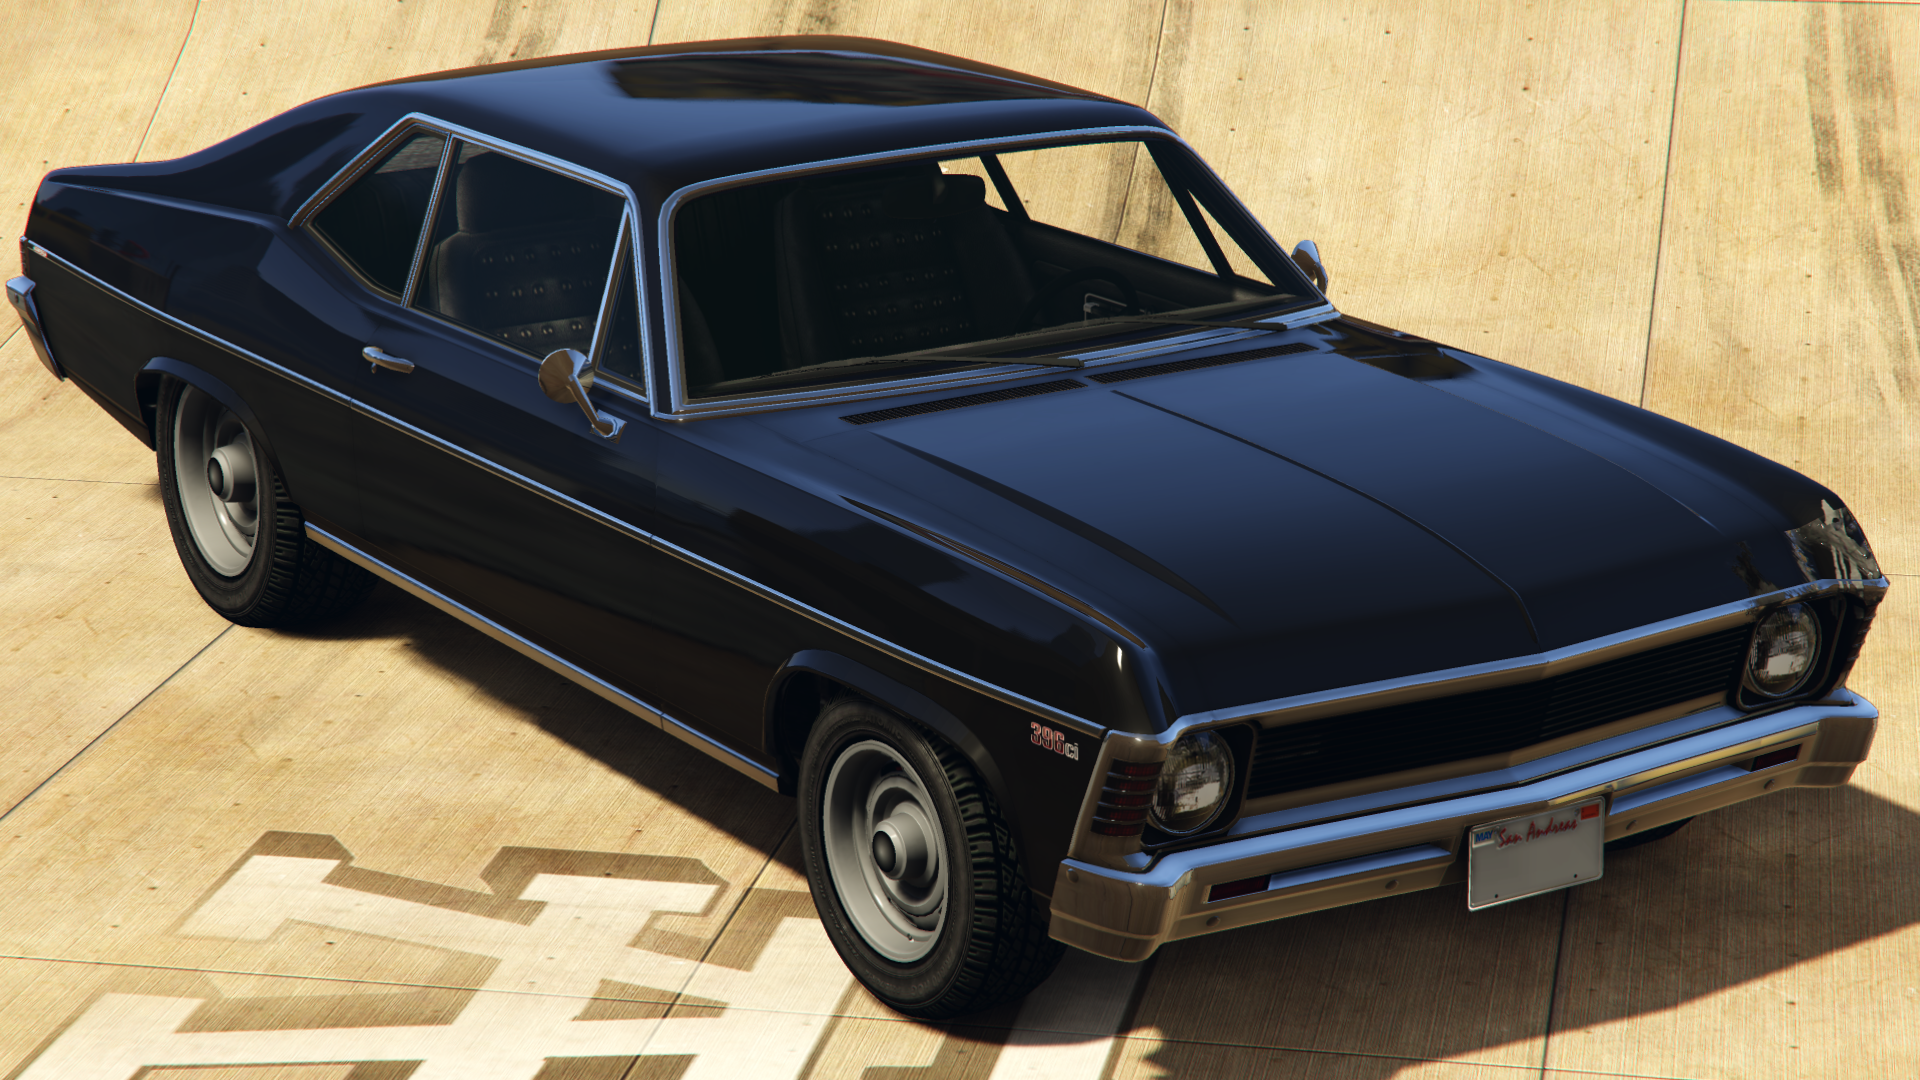 The Declasse Vamos will be releasing in GTA Online this week - RockstarINTEL